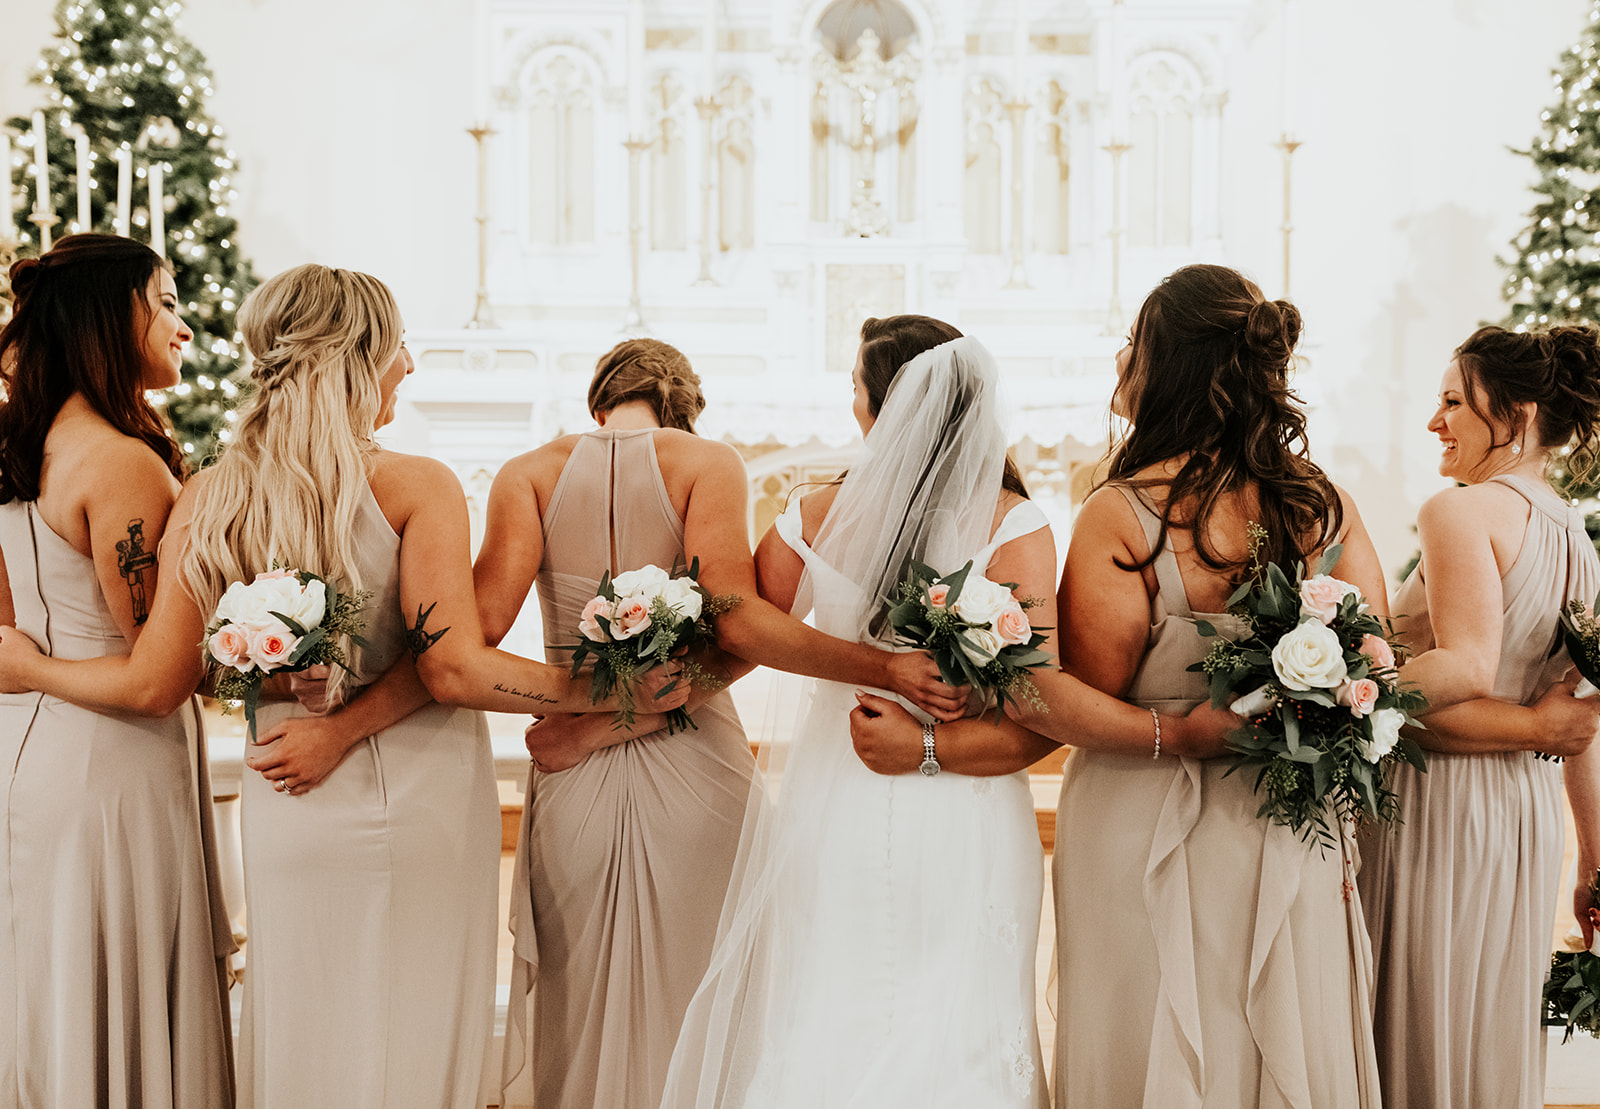 Elegant Midwest Winter Weddinga